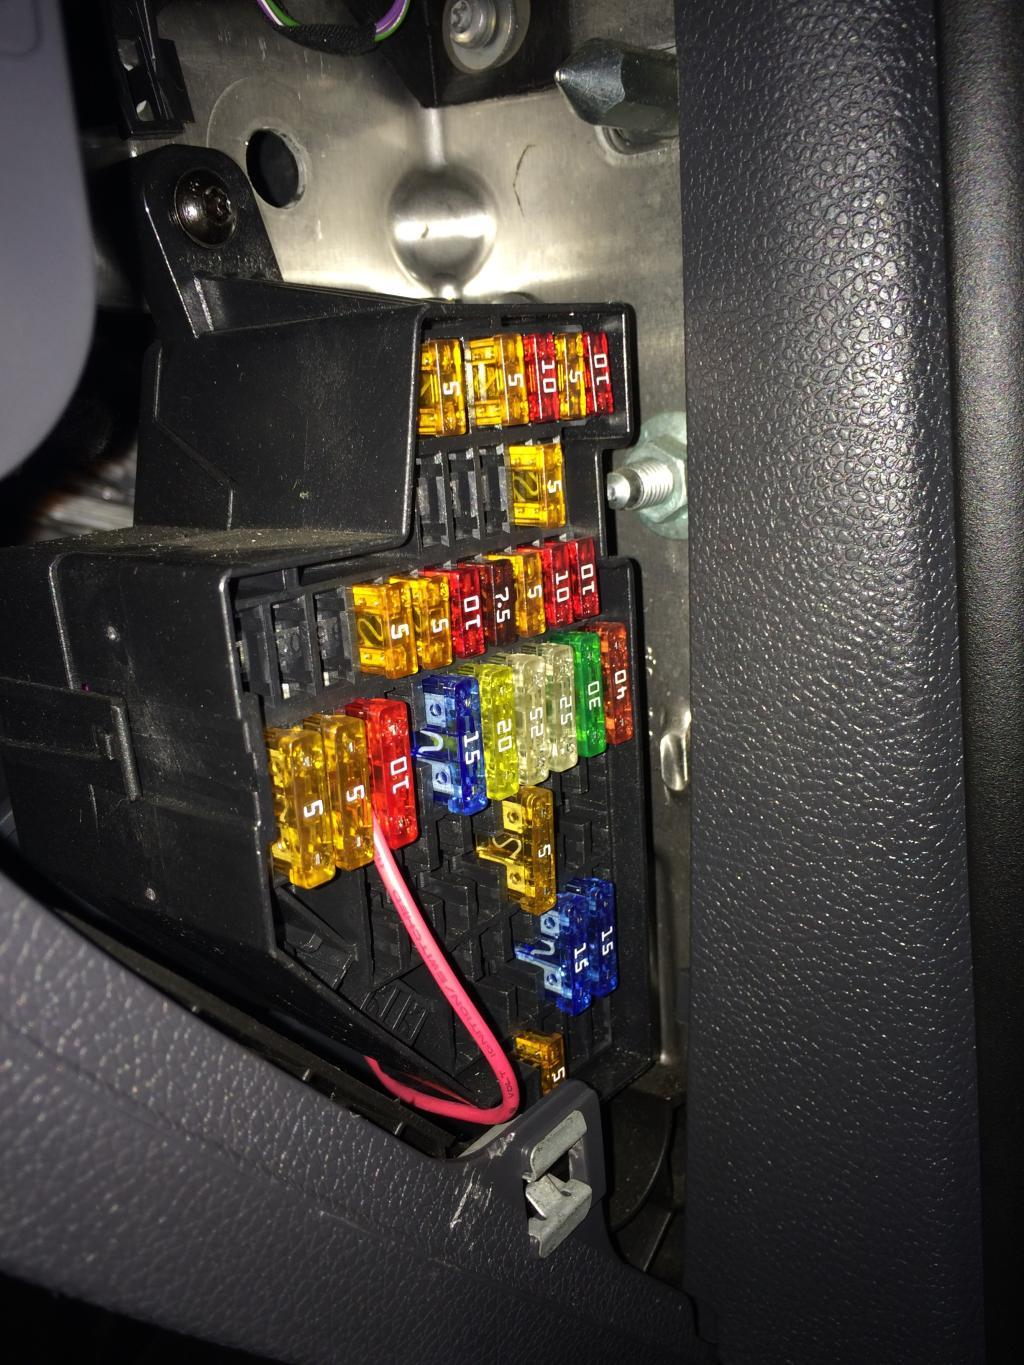 2005 Gti Fuse Box Wiring Diagrams 2 0 Turbo Dsg Pictures Sat Nav And